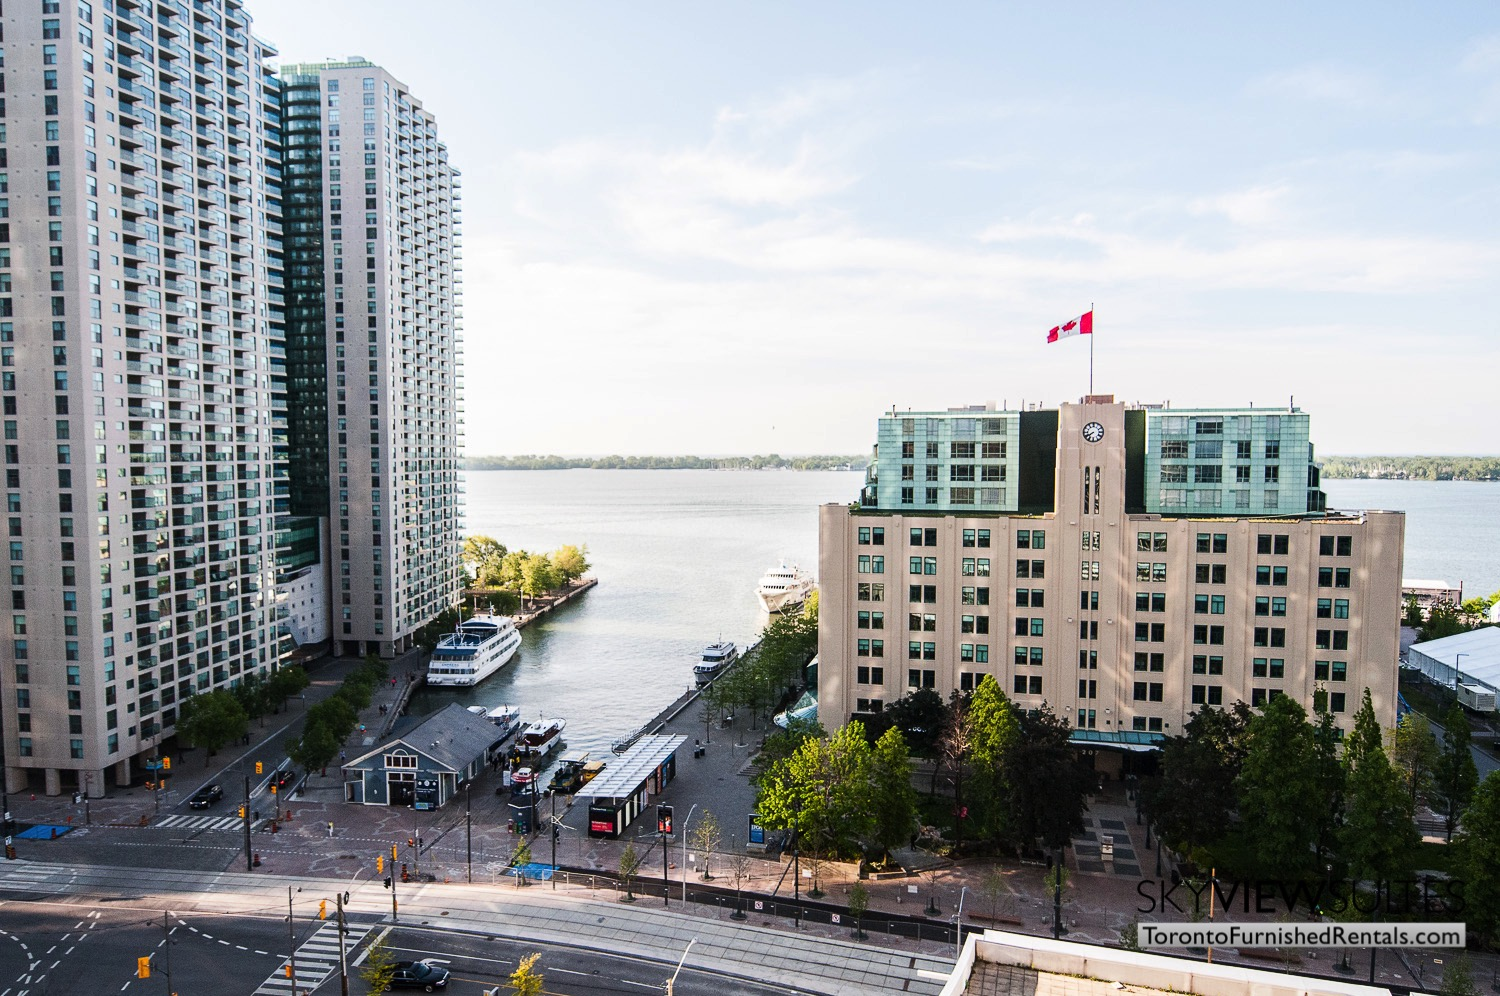 furnished rentals toronto waterfront view